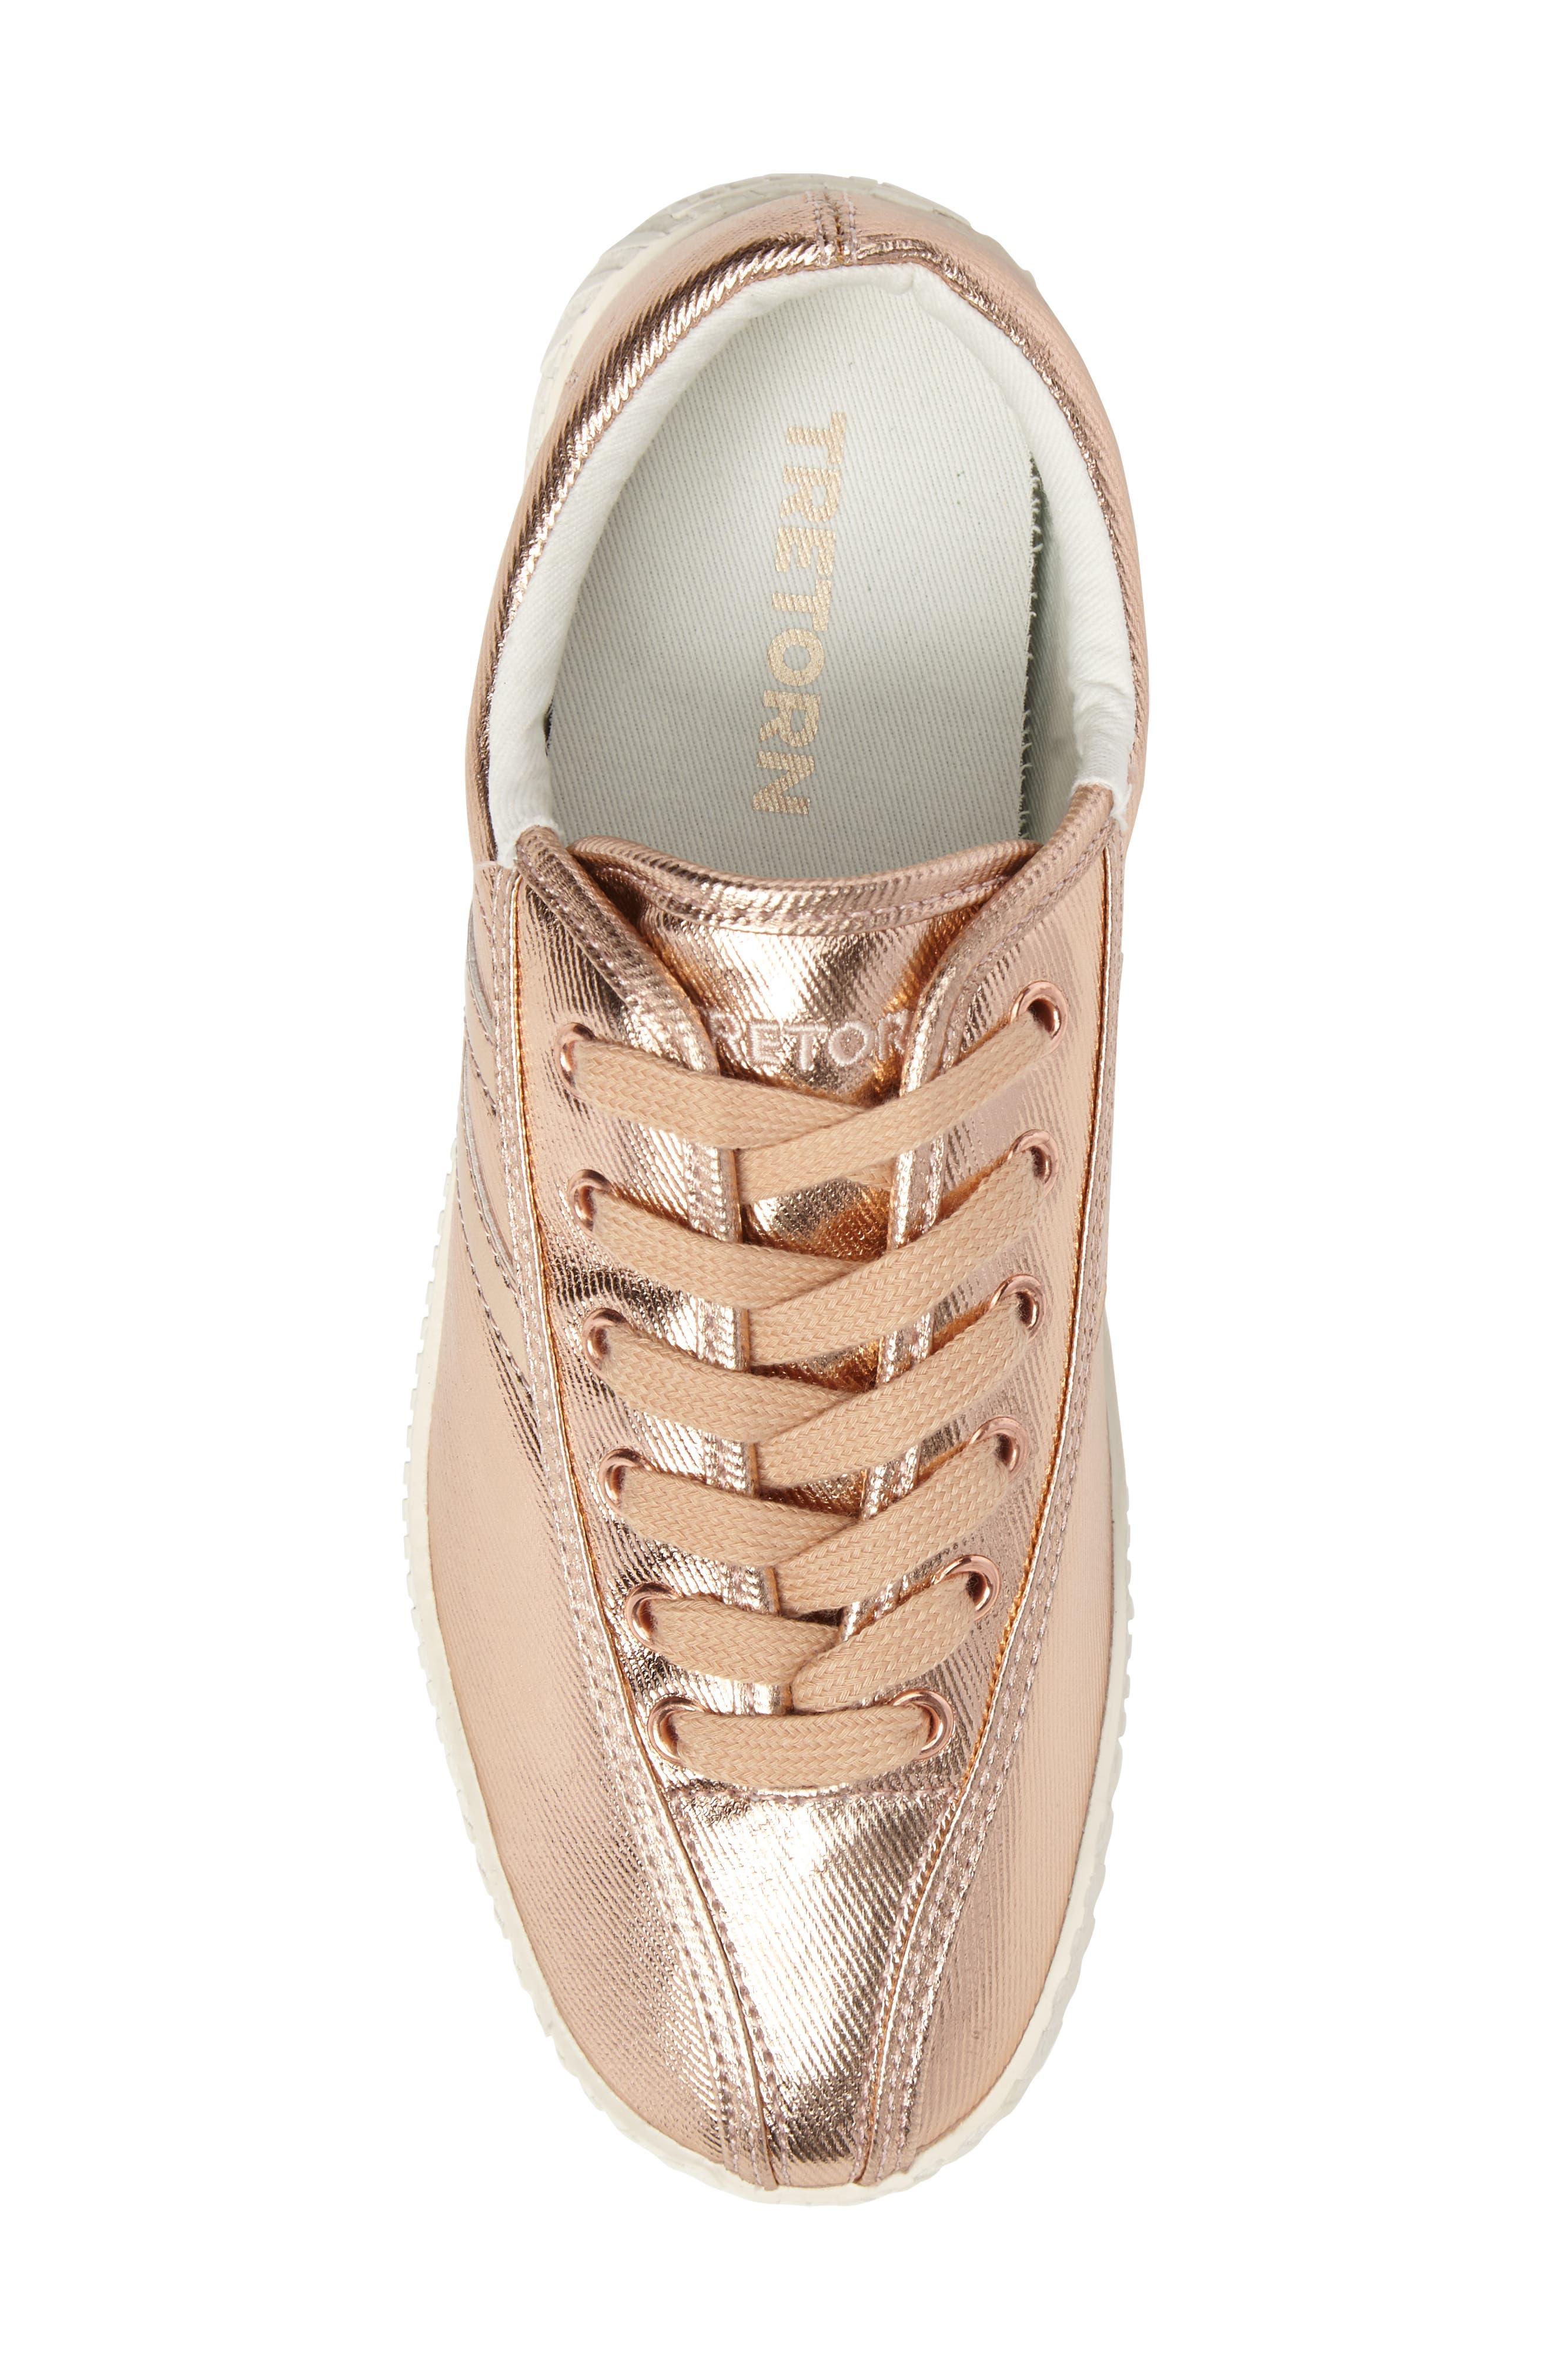 Nylite Plus Sneaker,                             Alternate thumbnail 5, color,                             Rose Gold/ Rose Gold